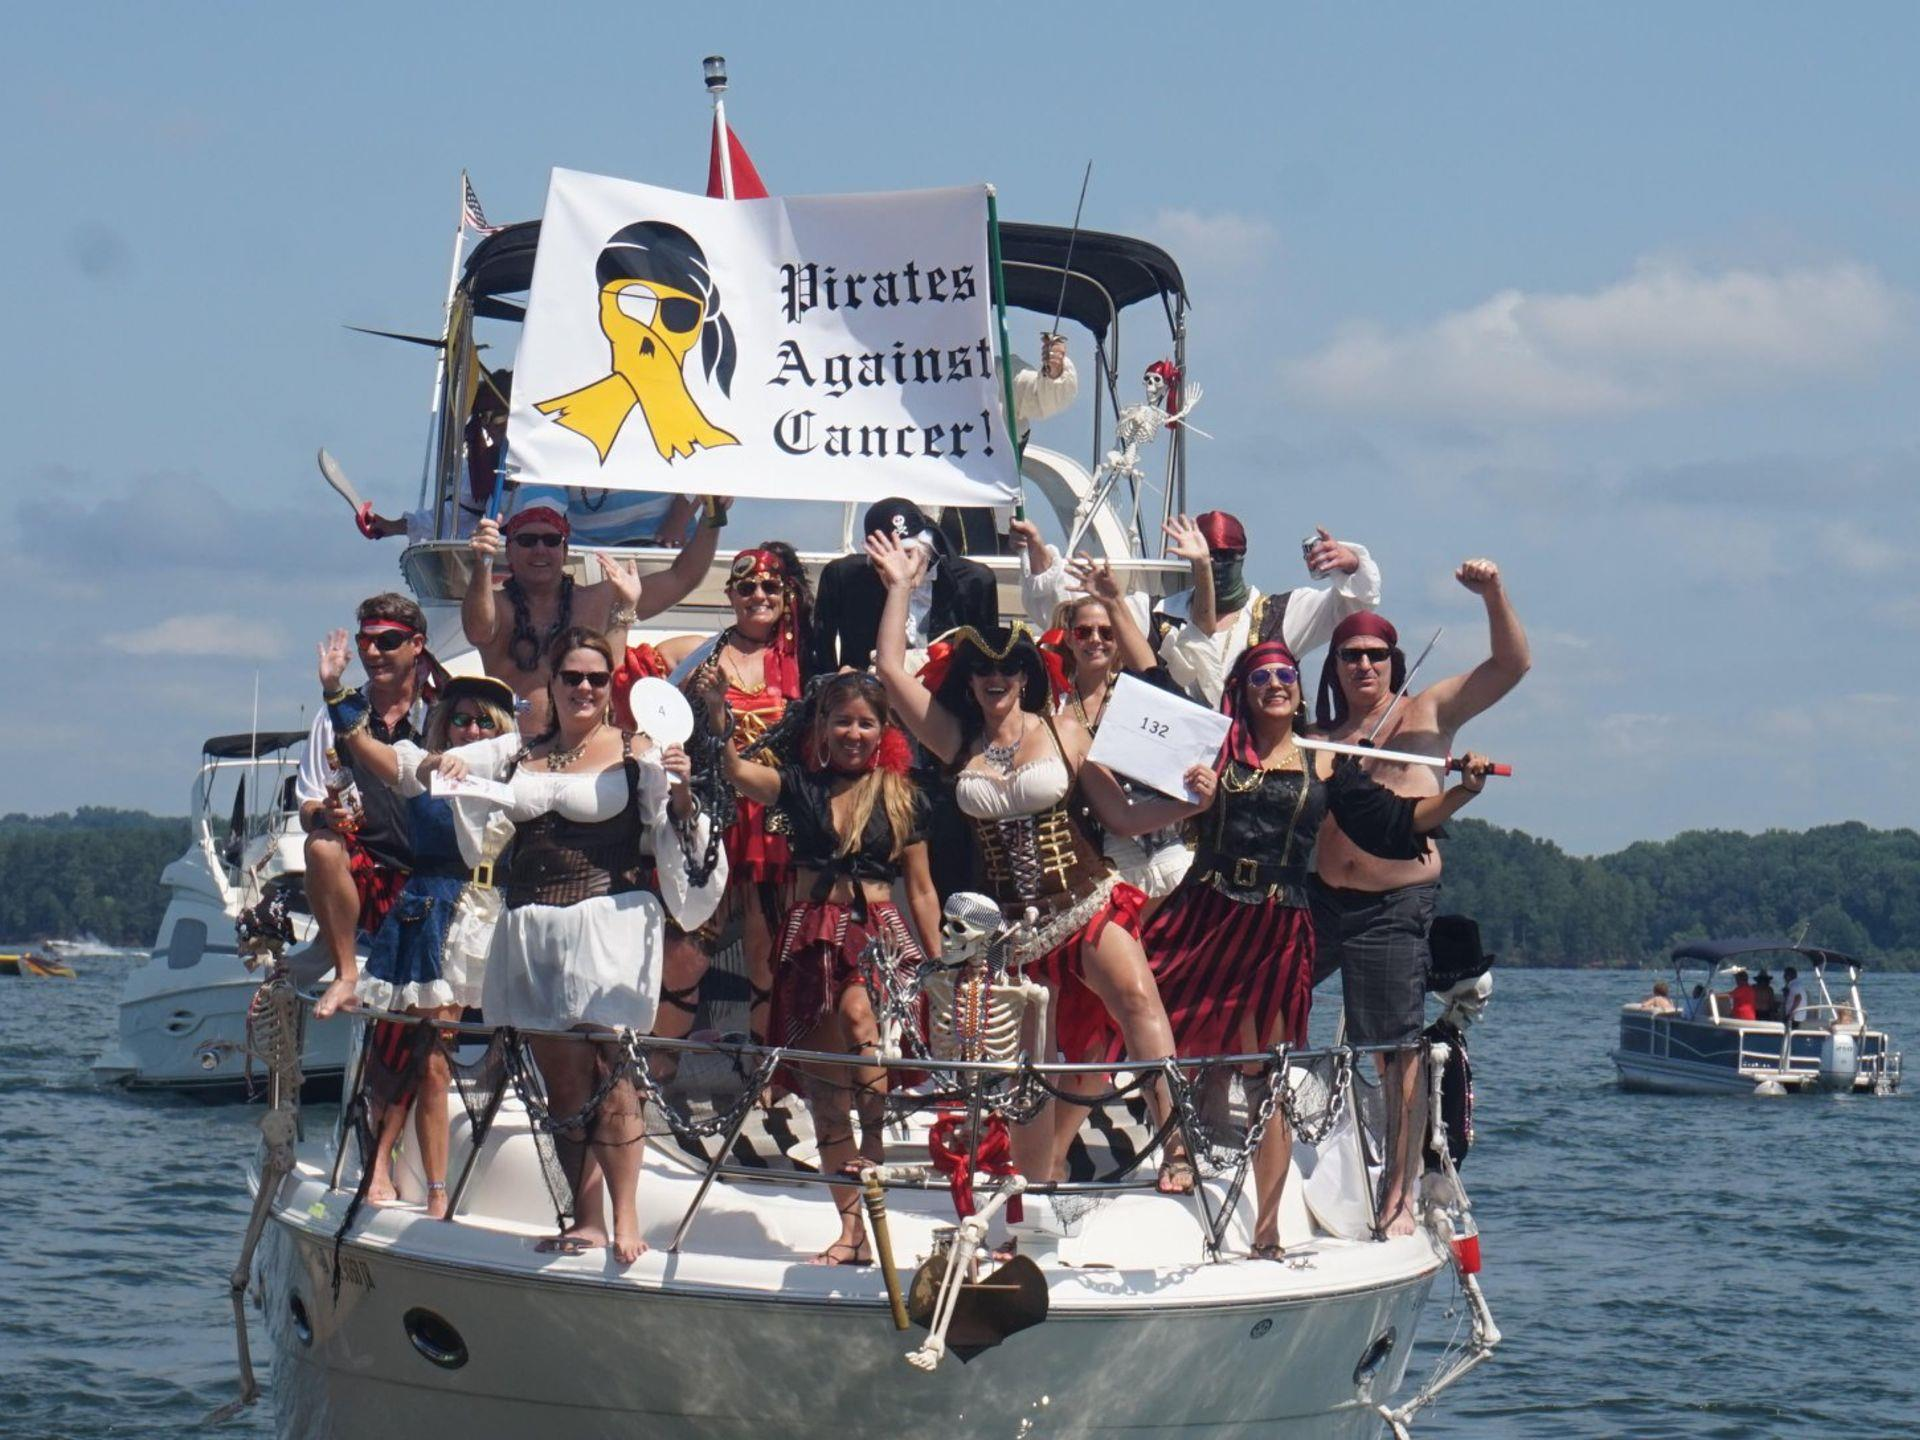 People dressed in Pirate attire standing on a boat